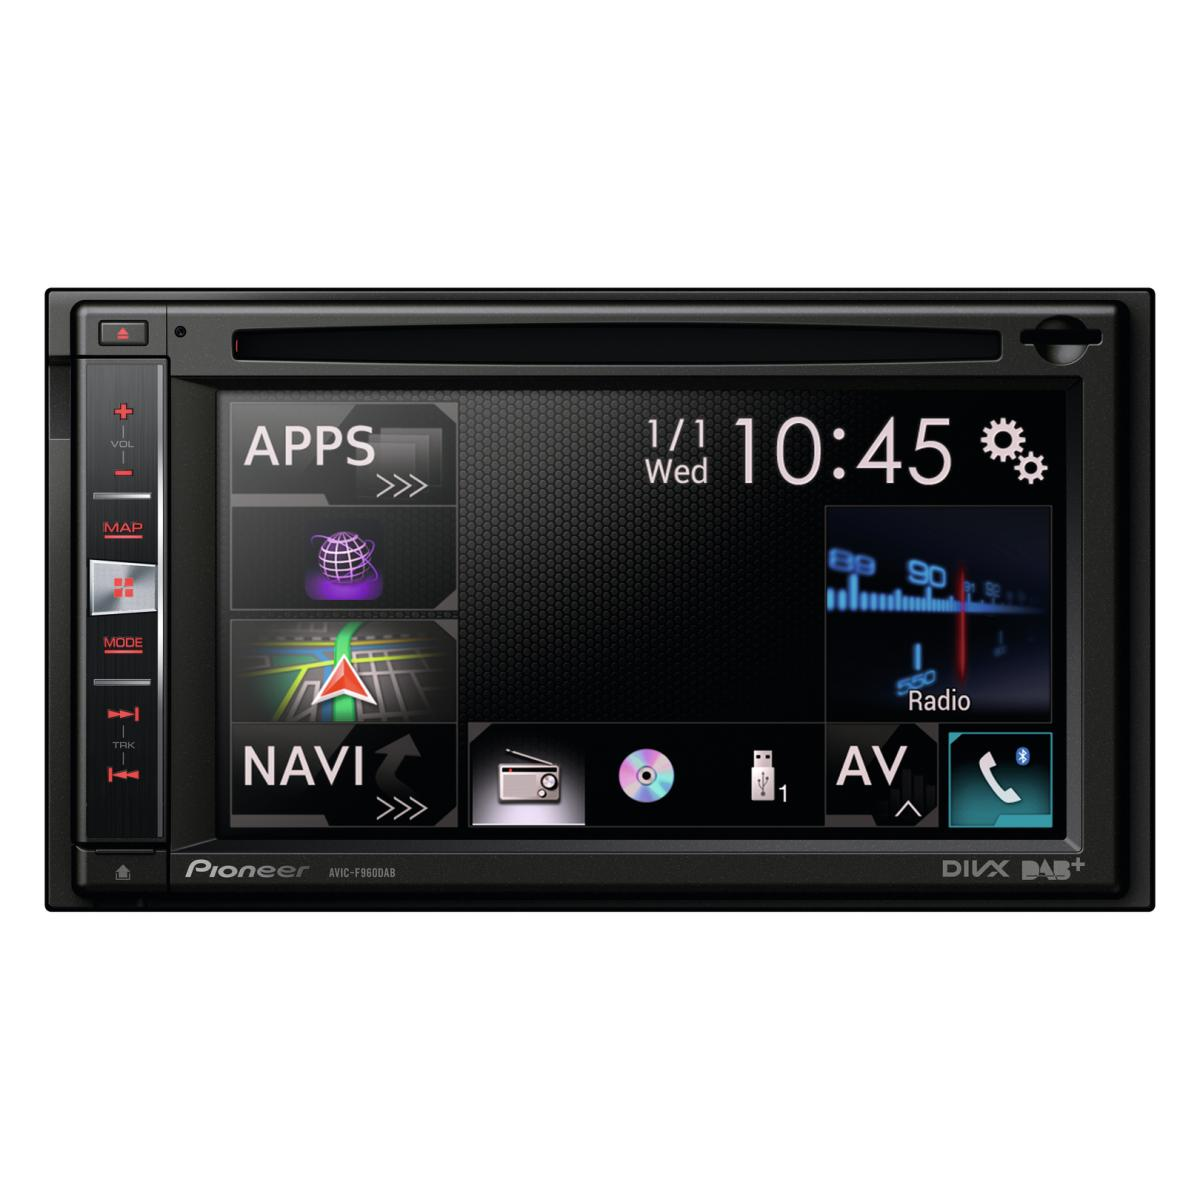 In Car Sat Nav Pioneer AVIC-F960DAB 3